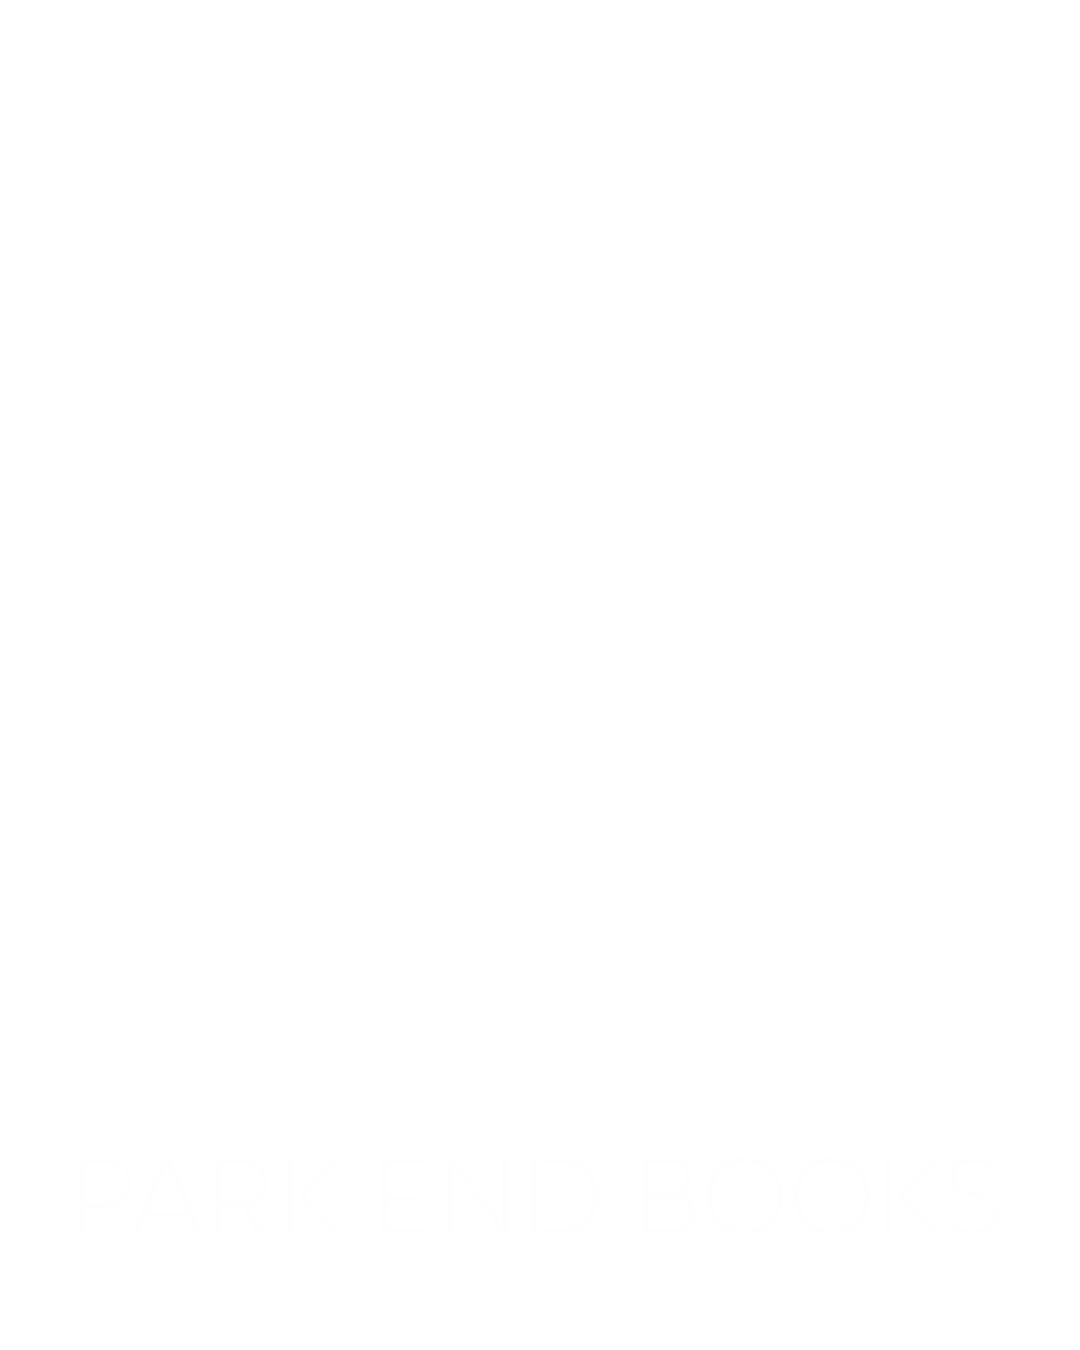 Park End Books